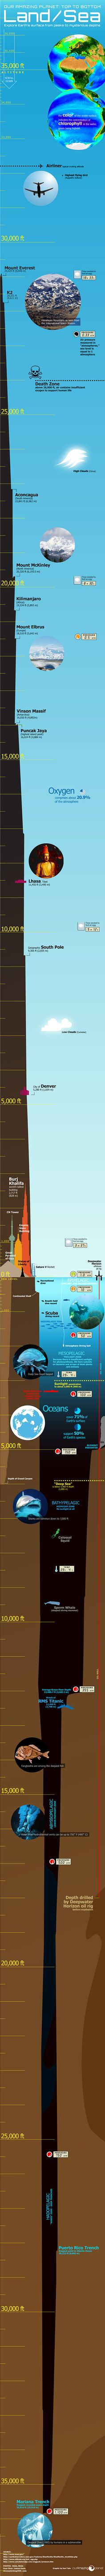 Designed by Karl Tate, Our Amazing Planet: Top to Bottom is a cool infographic that looks at the scale of things from the upper atmosphere to the deep